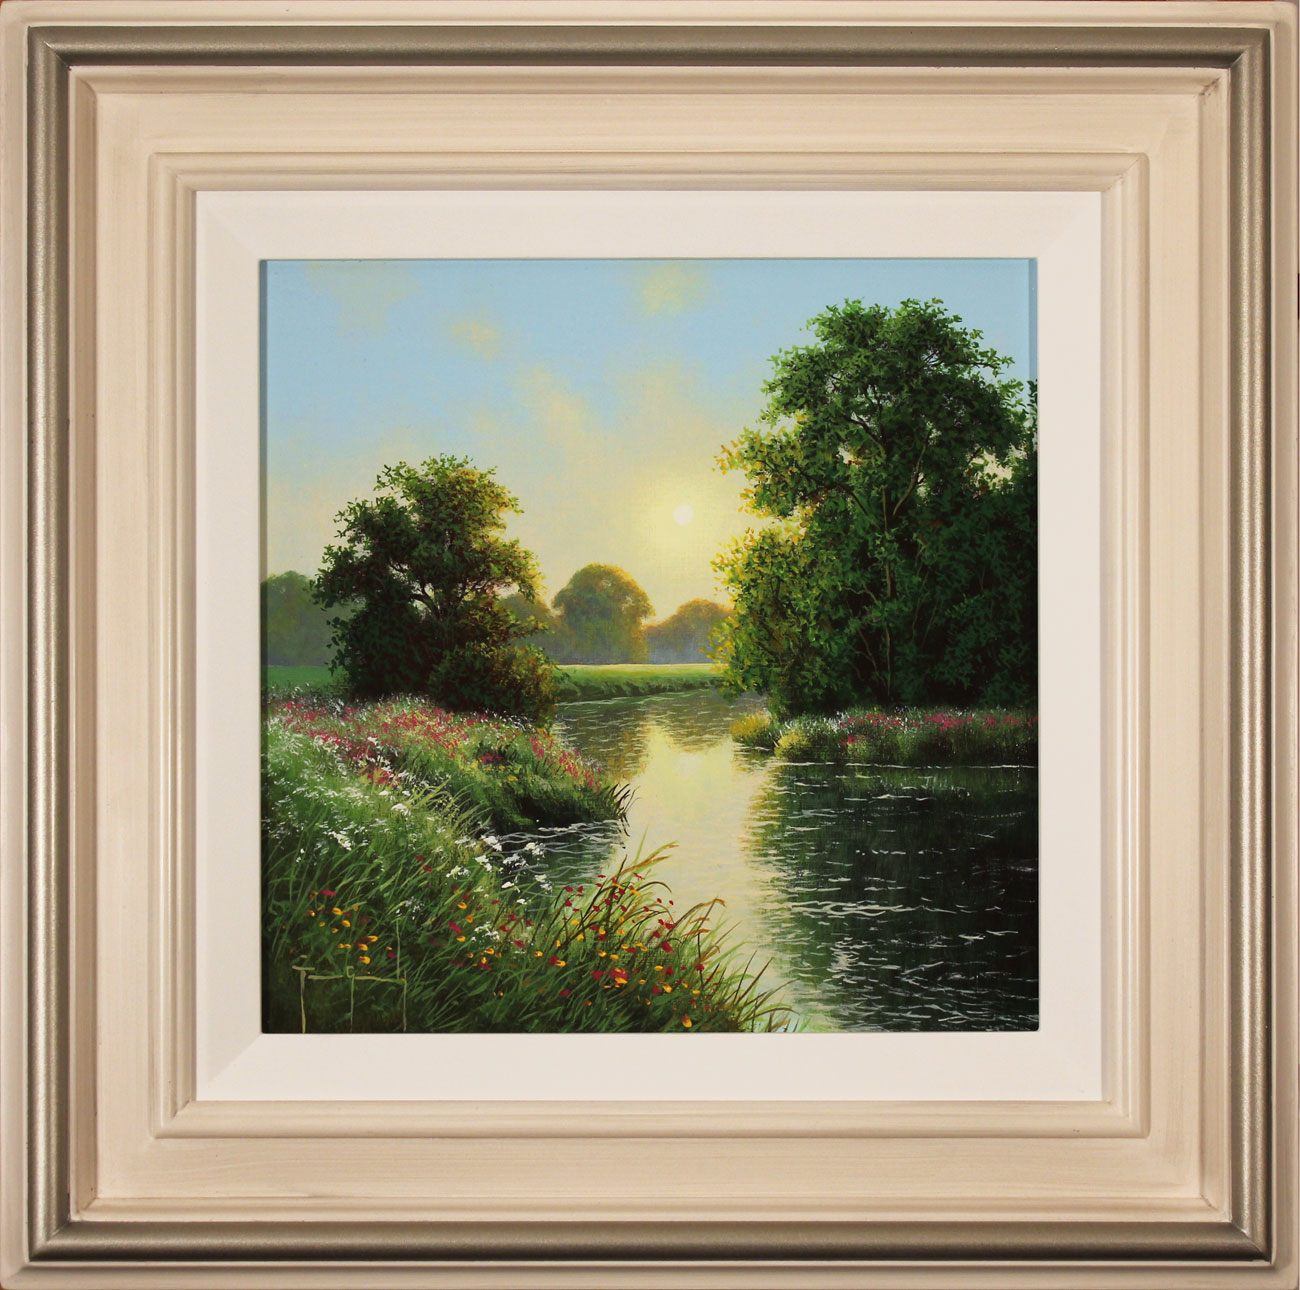 Terry Grundy, Original oil painting on panel, Morning Calm, click to enlarge